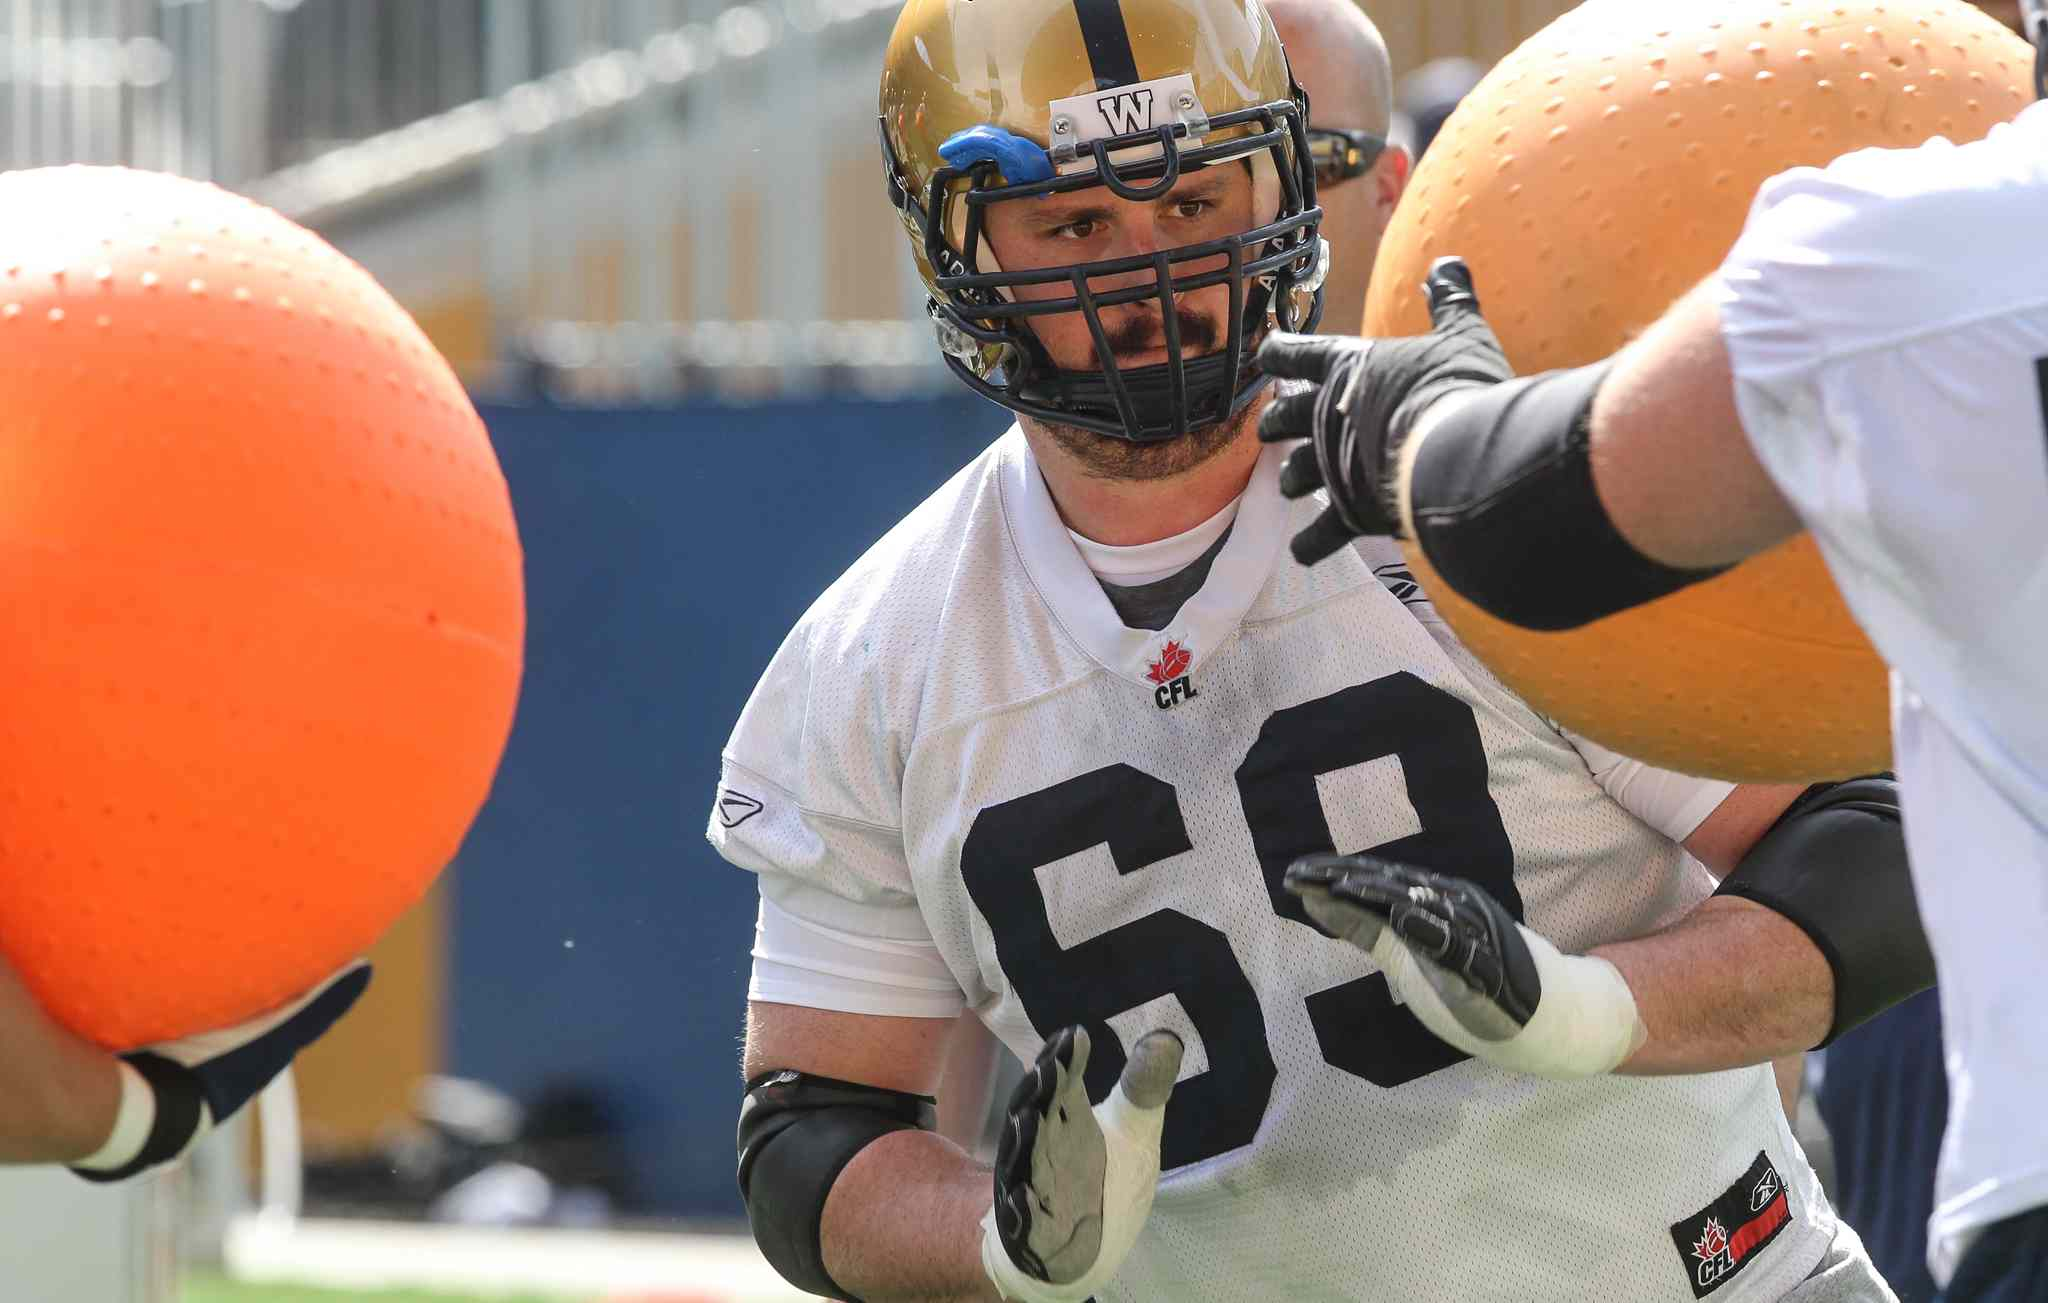 Glenn January takes on the Big Balls during the first official day of the Winnipeg Blue Bombers training camp at Investors Group Field Sunday morning.